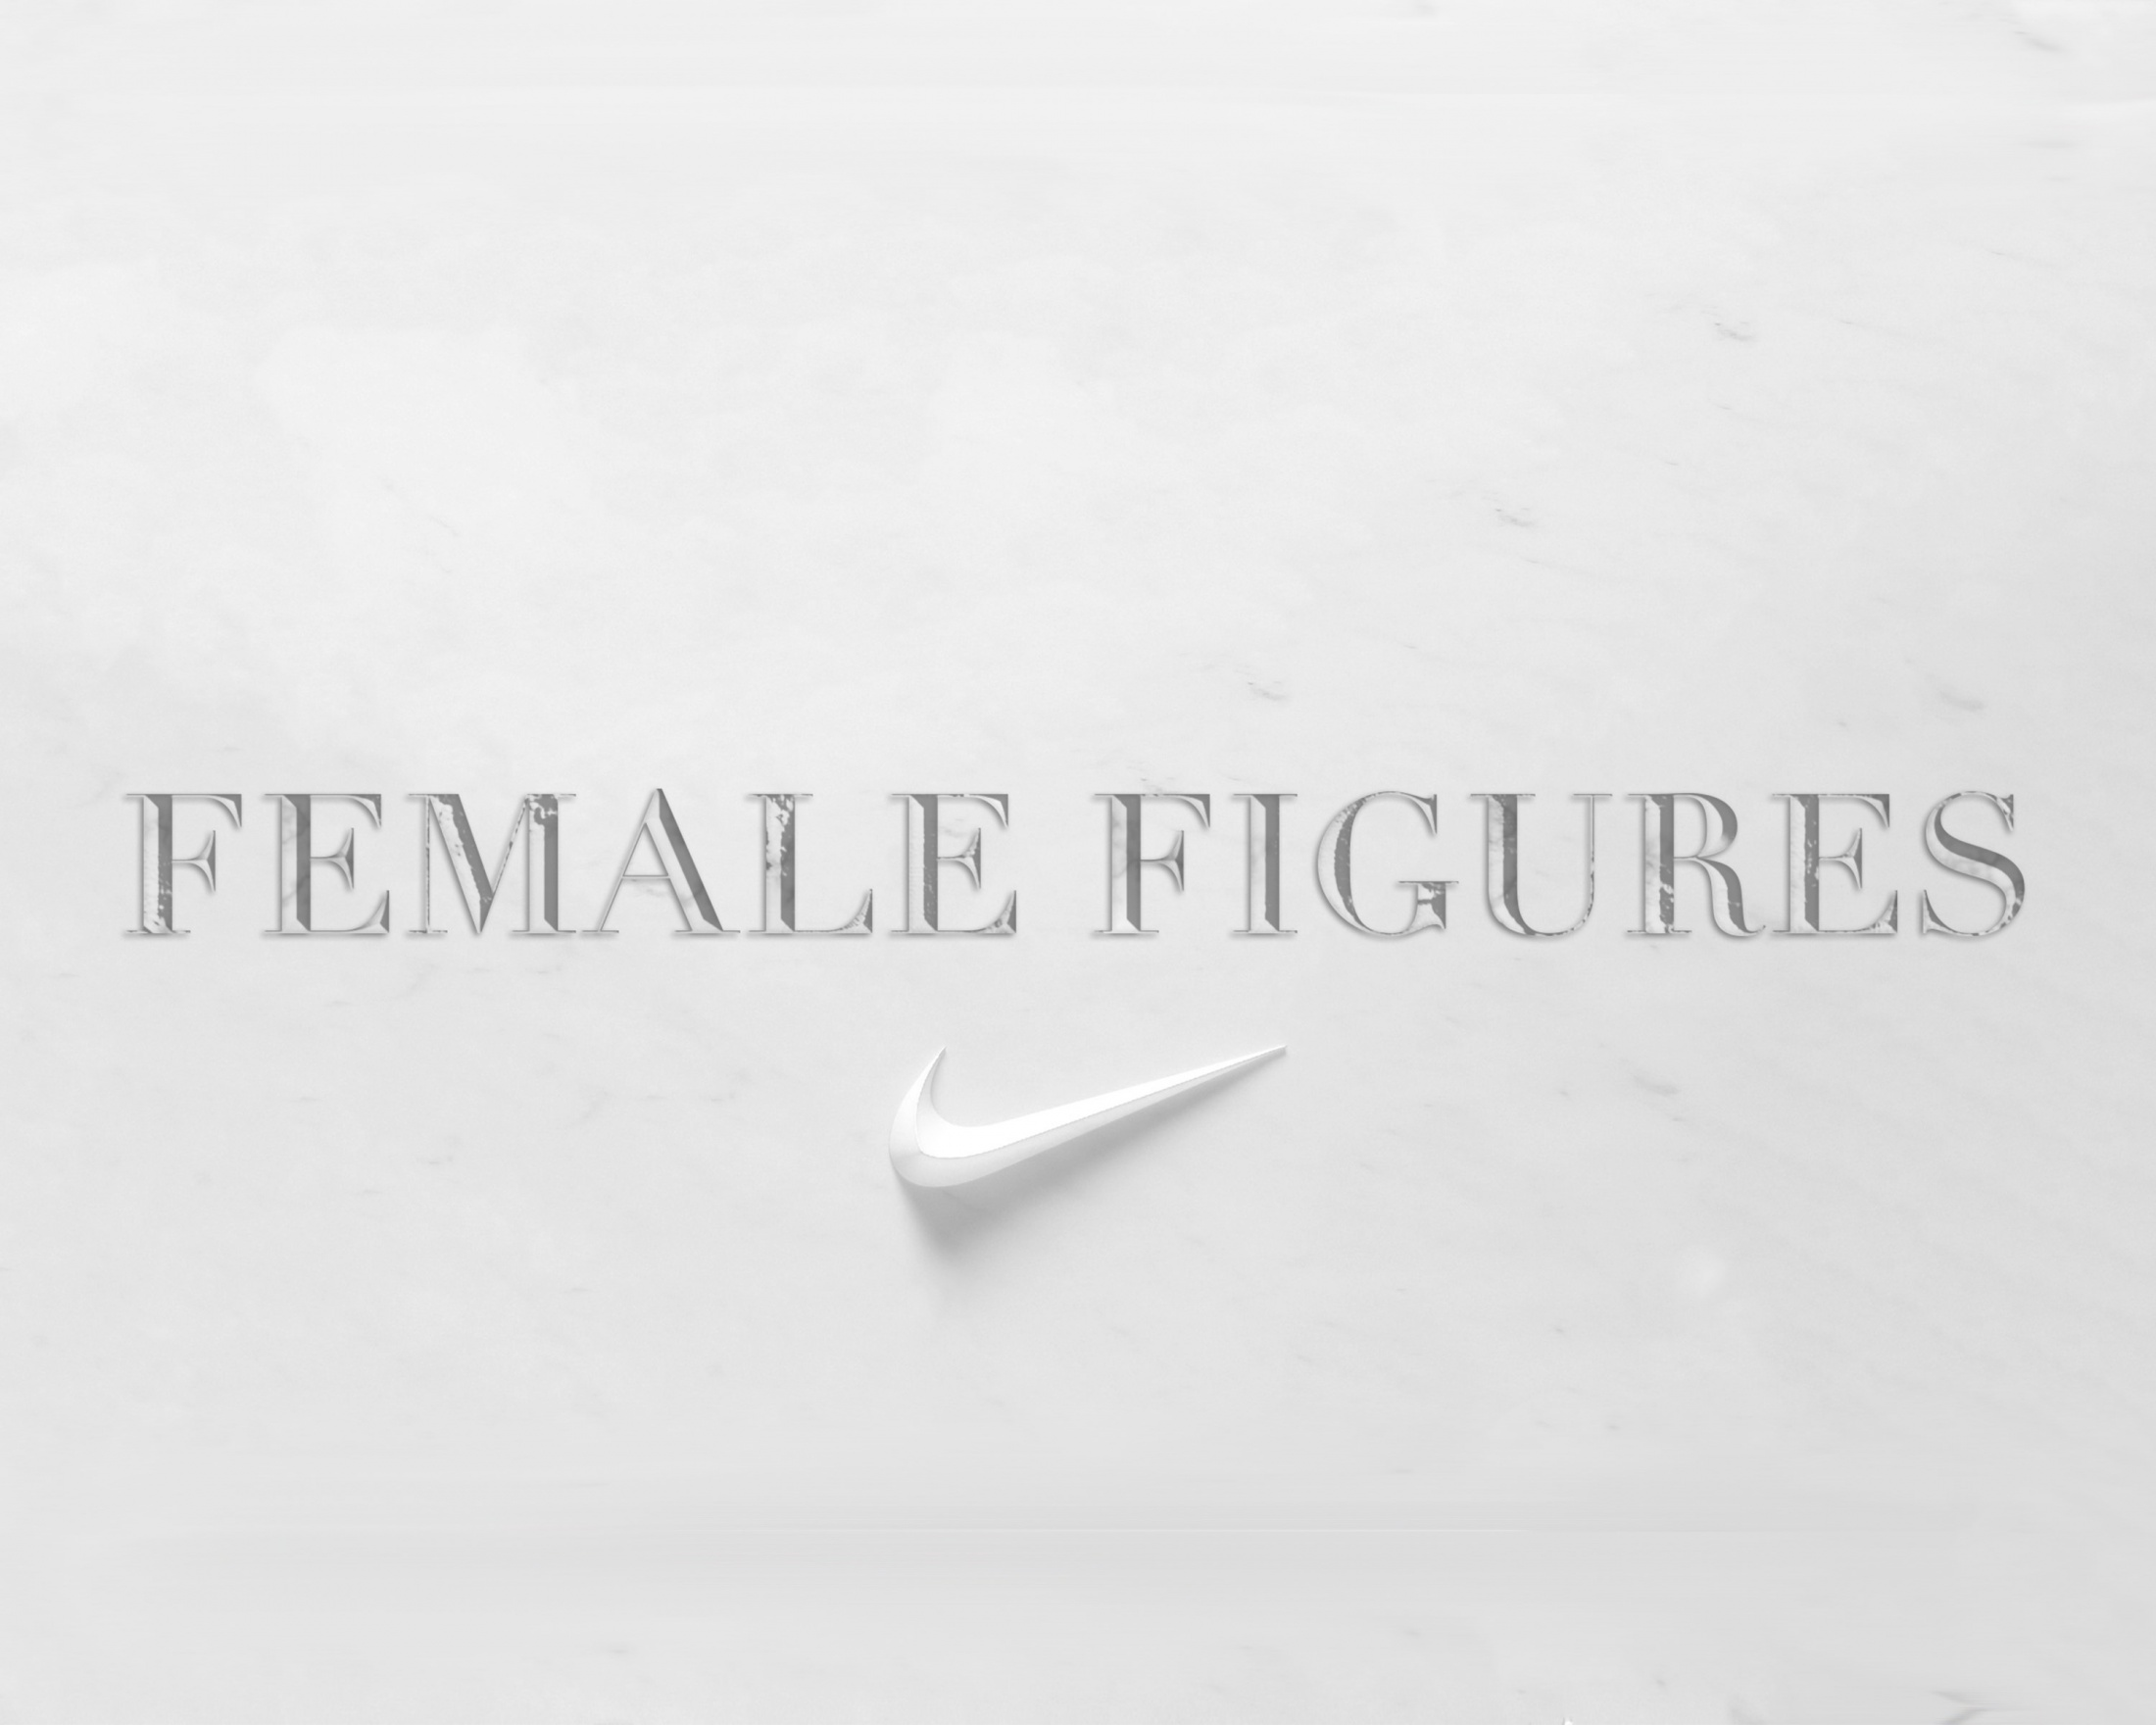 Image Media for Female Figures